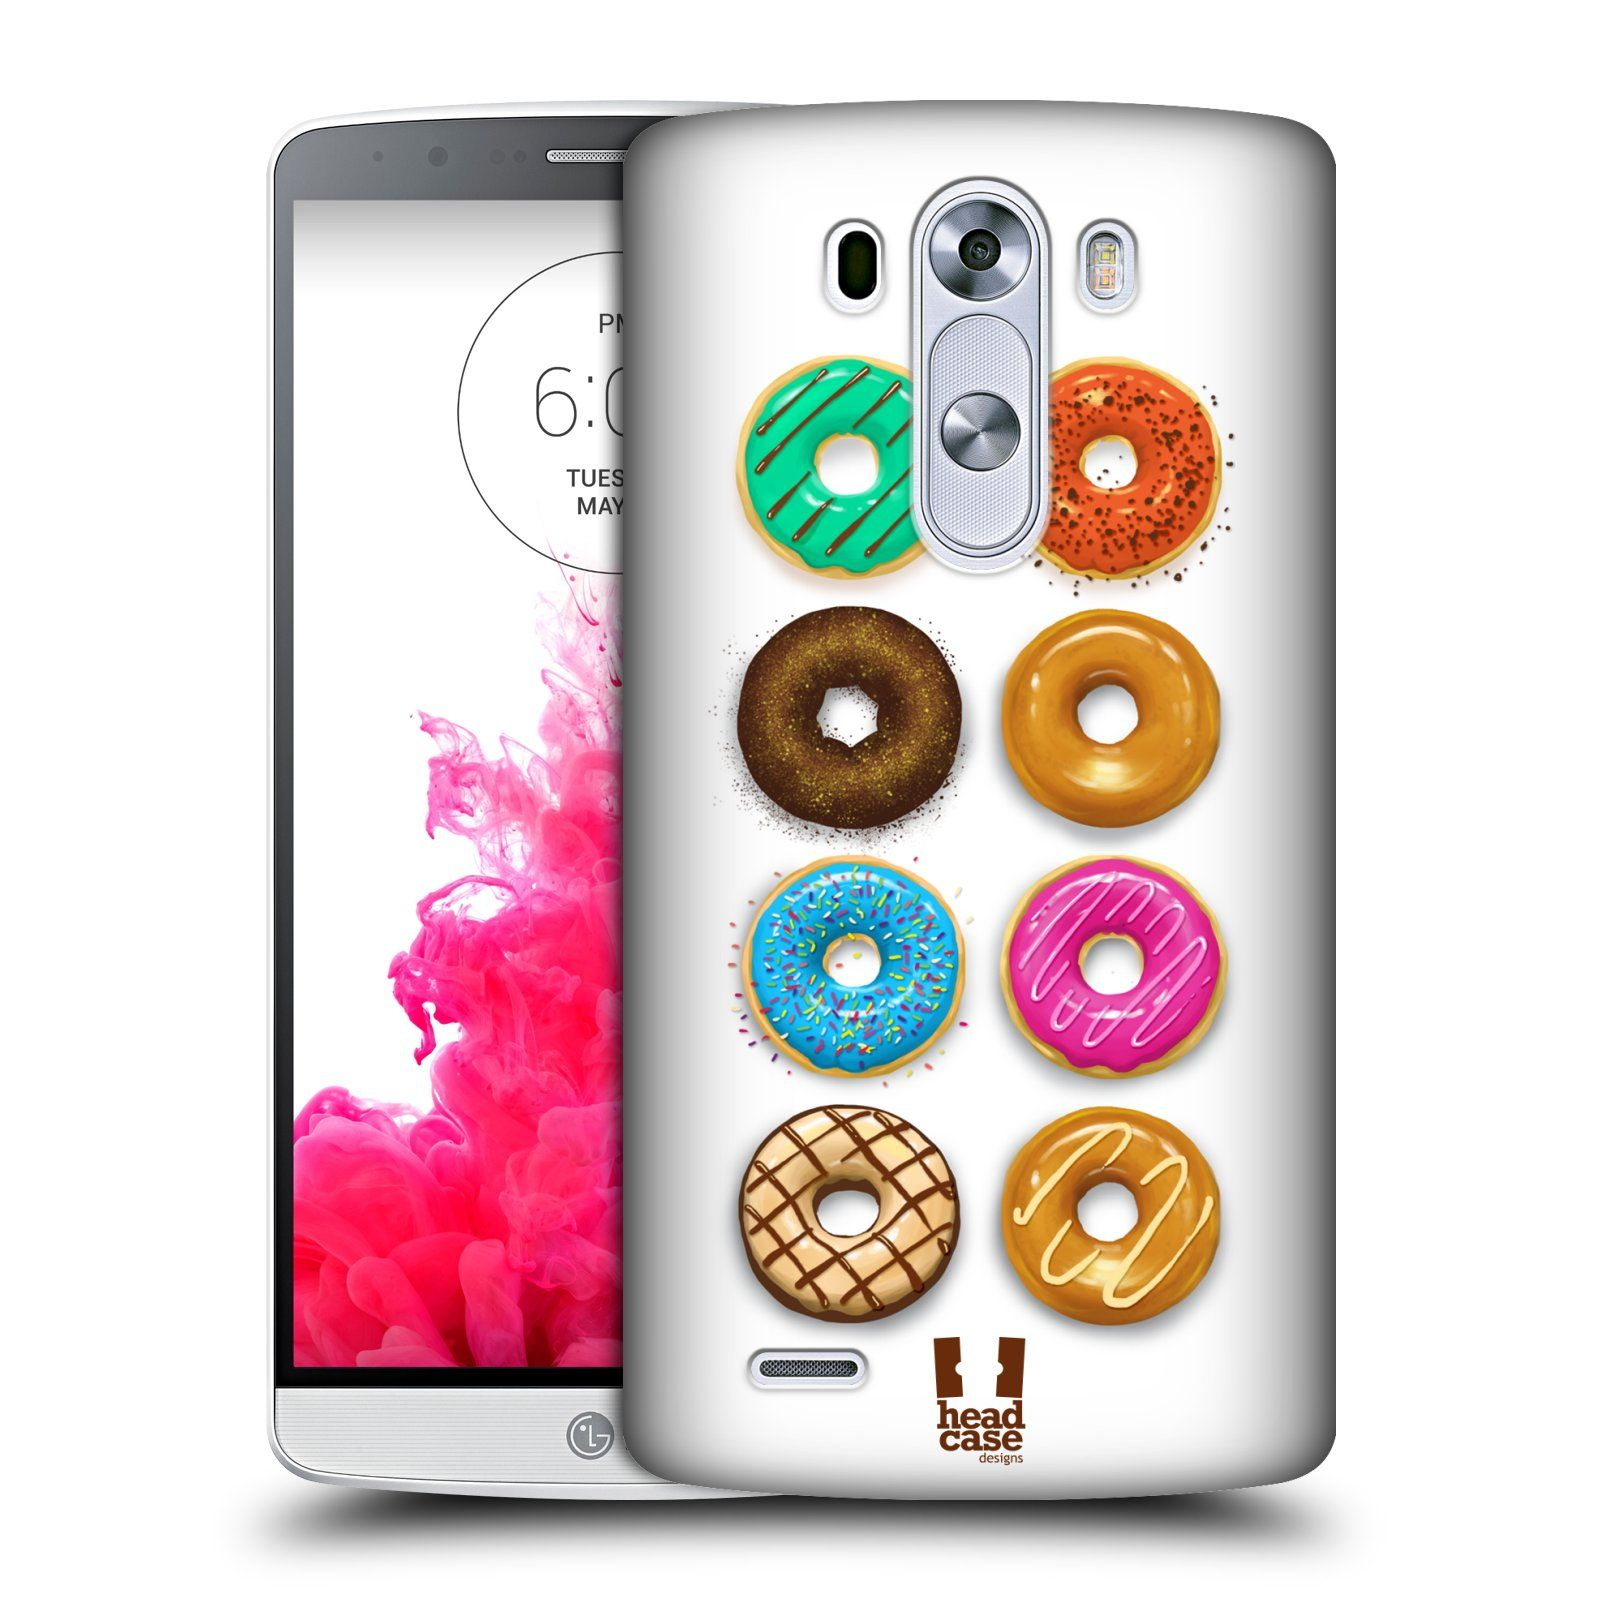 Shop for cases and covers for your phone or tablet. Create your own design.